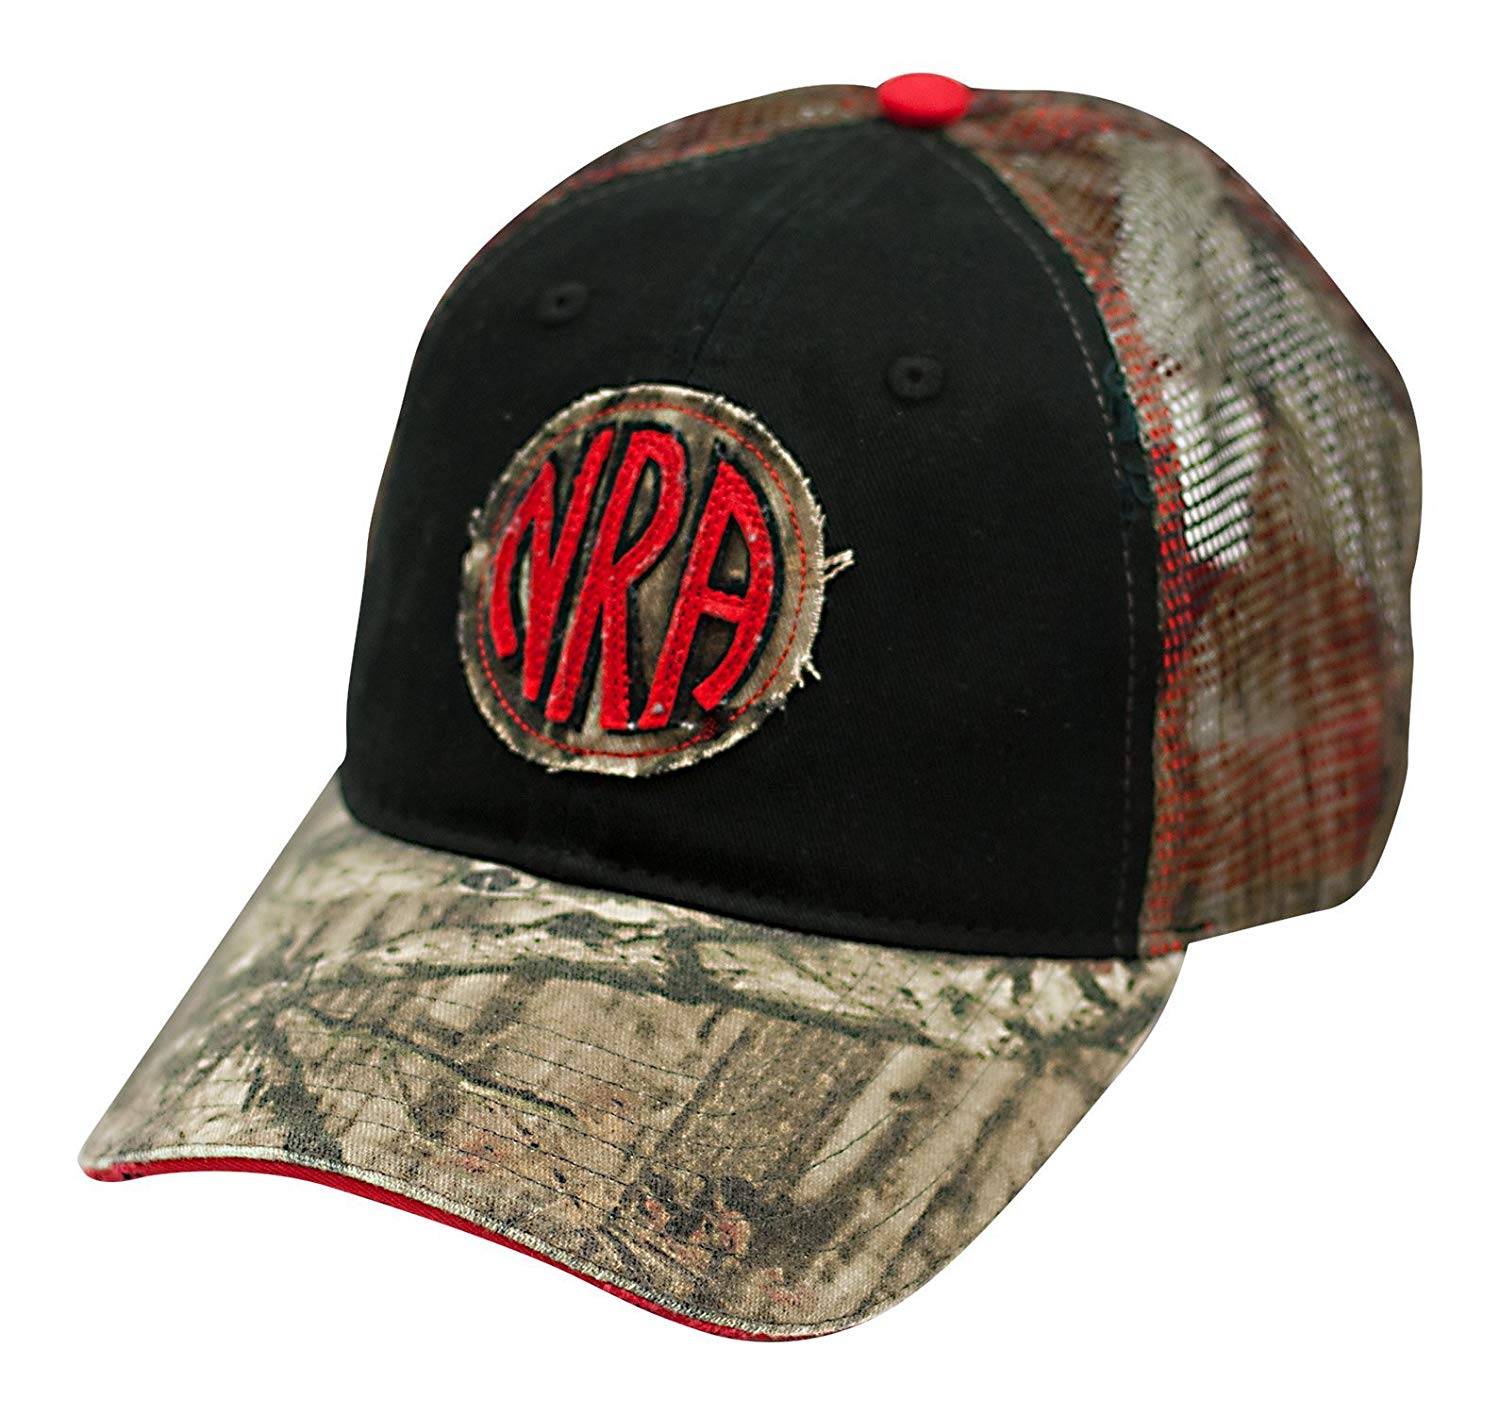 fcfbd97e612 Get Quotations · NRA Distressed Logo Camo Cap - Officially Licensed